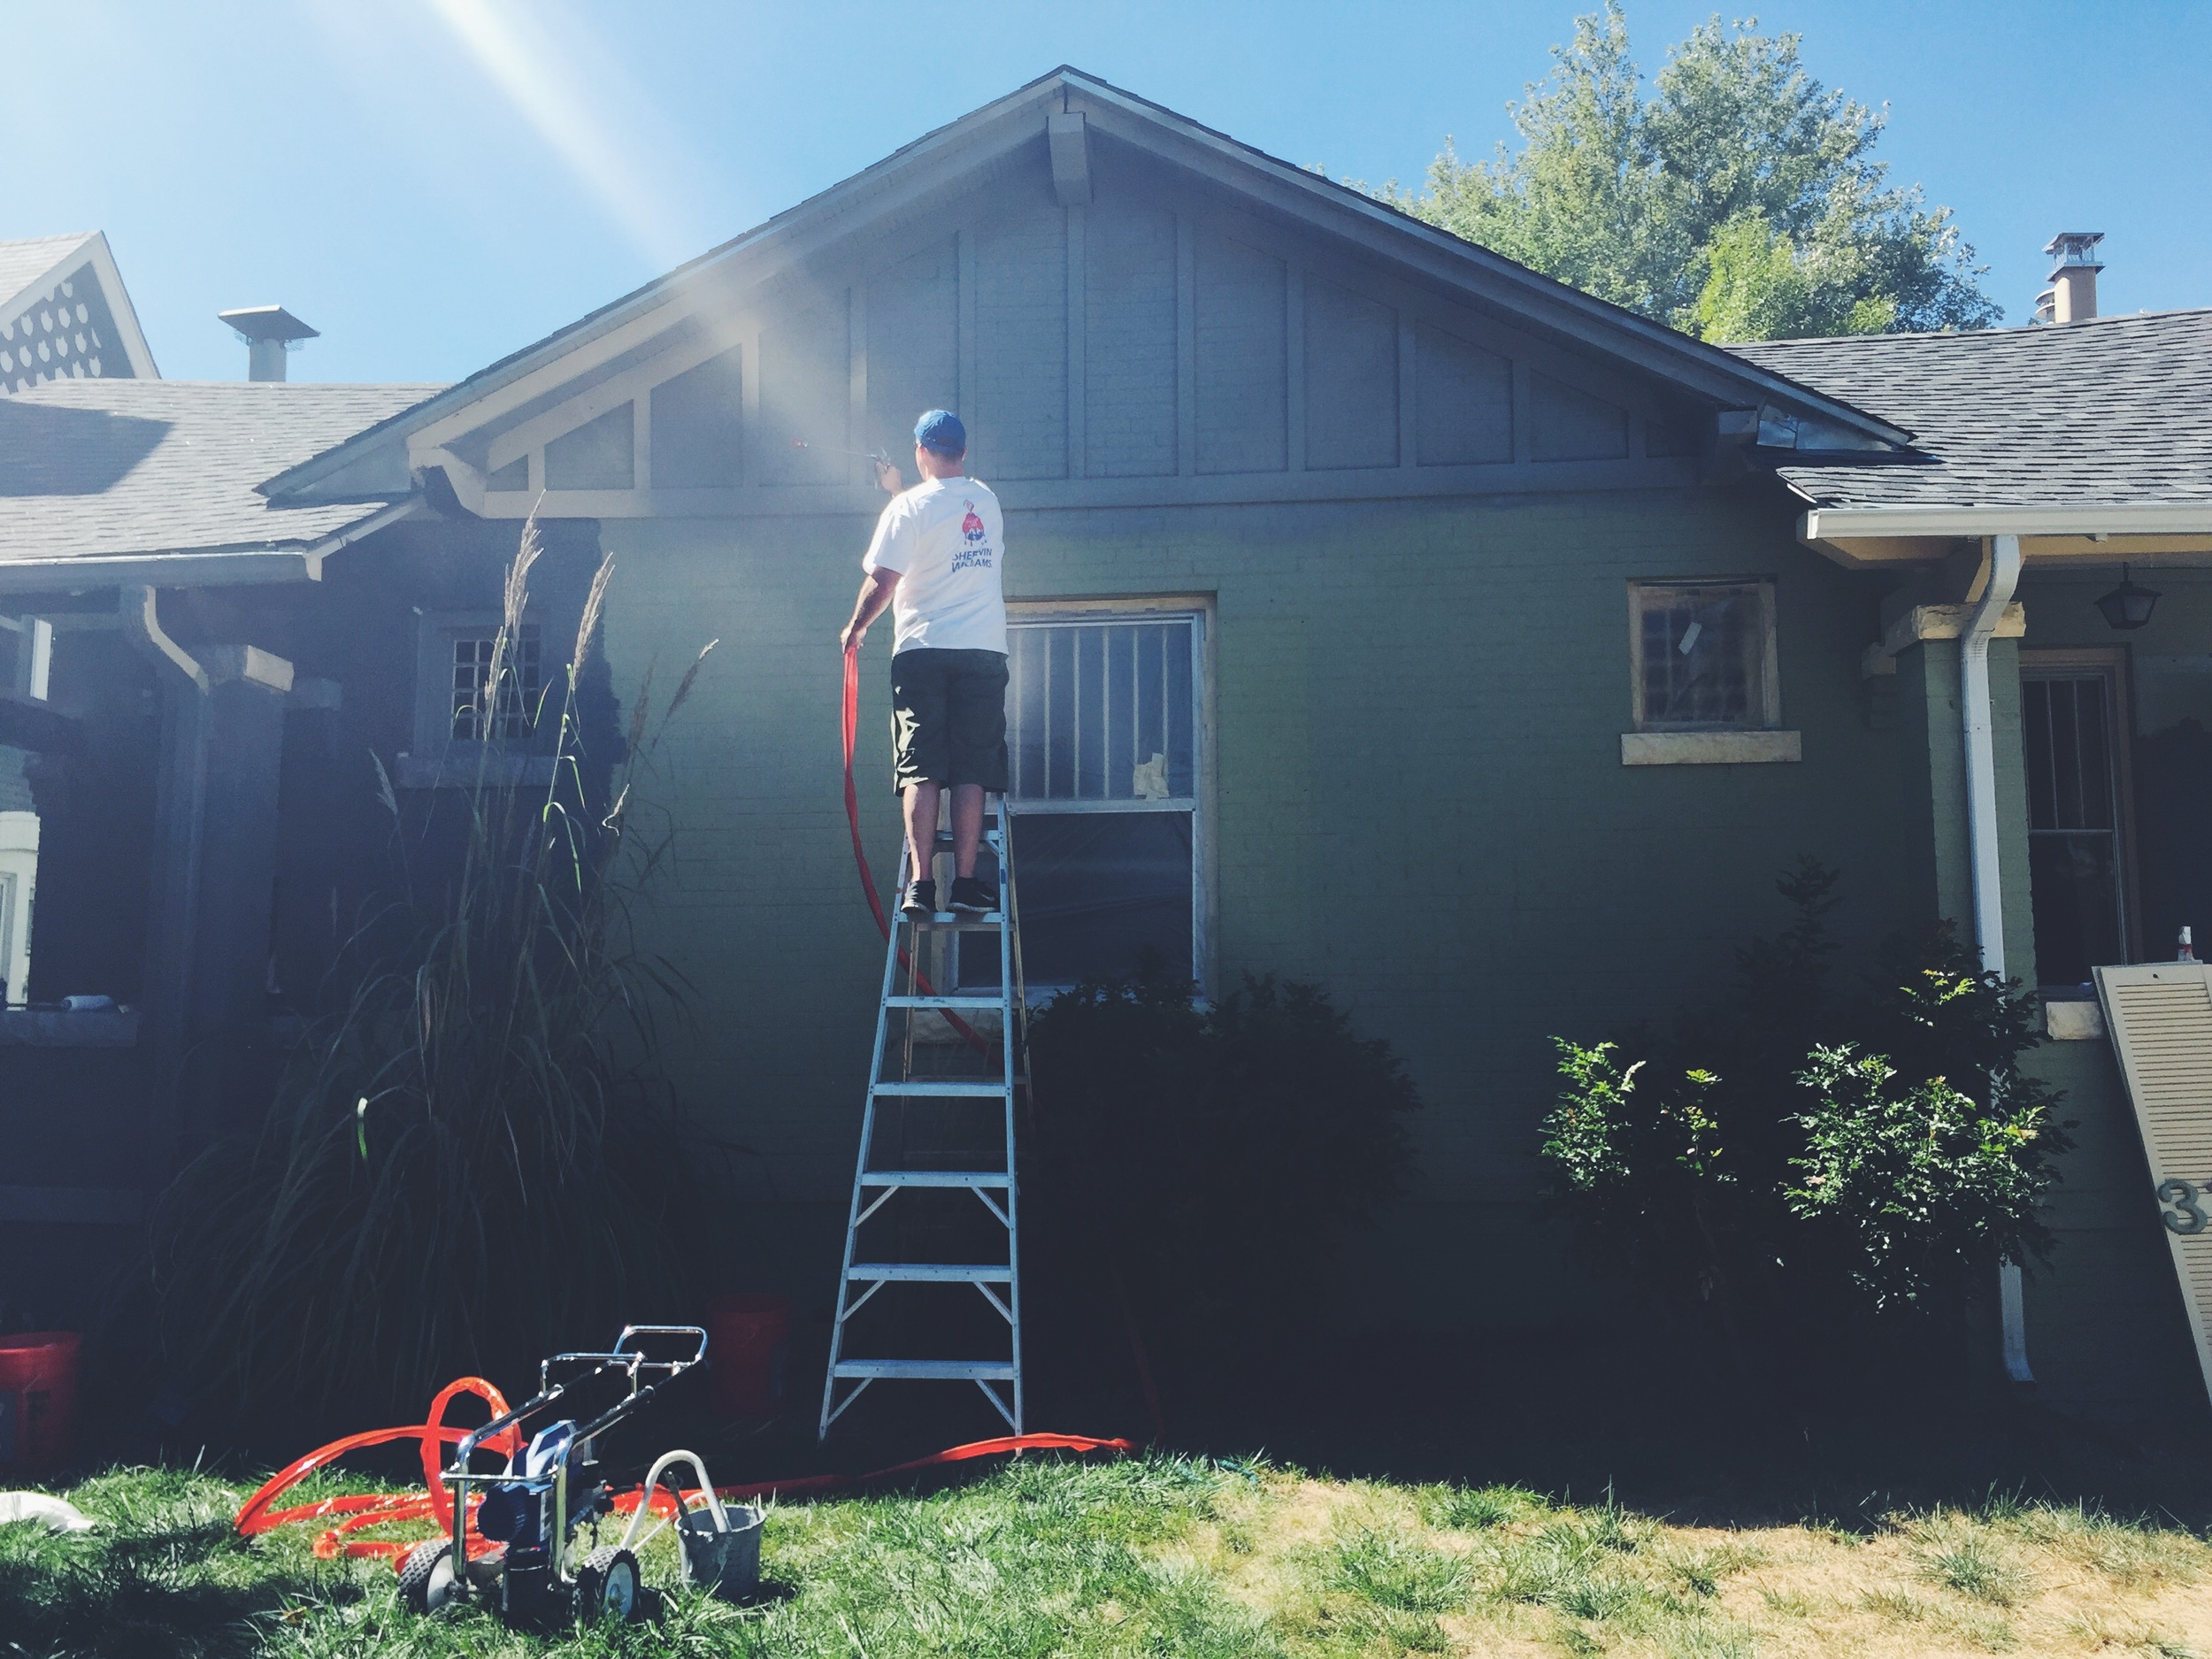 Our neighbor Rob - rented a sprayer and painted the front of the house in about 1 hour.